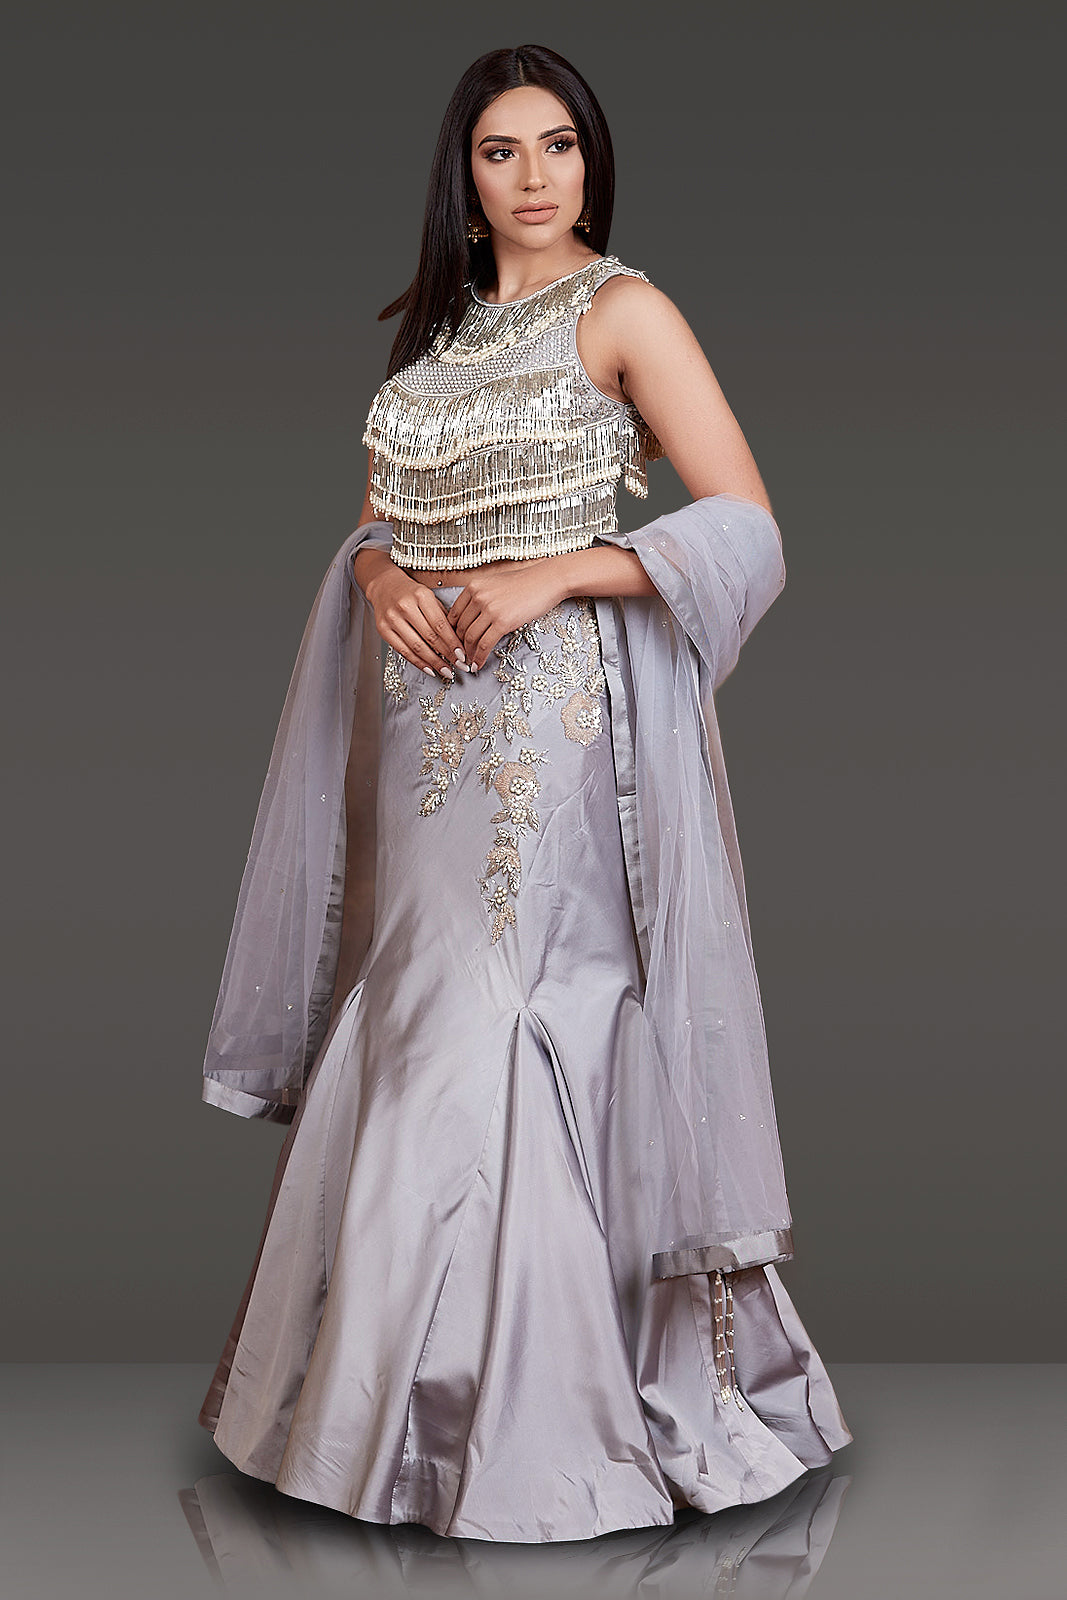 GREY TOP FULL EMBROIDERED AND TASSELS ON IT WITH FISH CUT SKIRT WITH EMBROIDERY NET SCARF